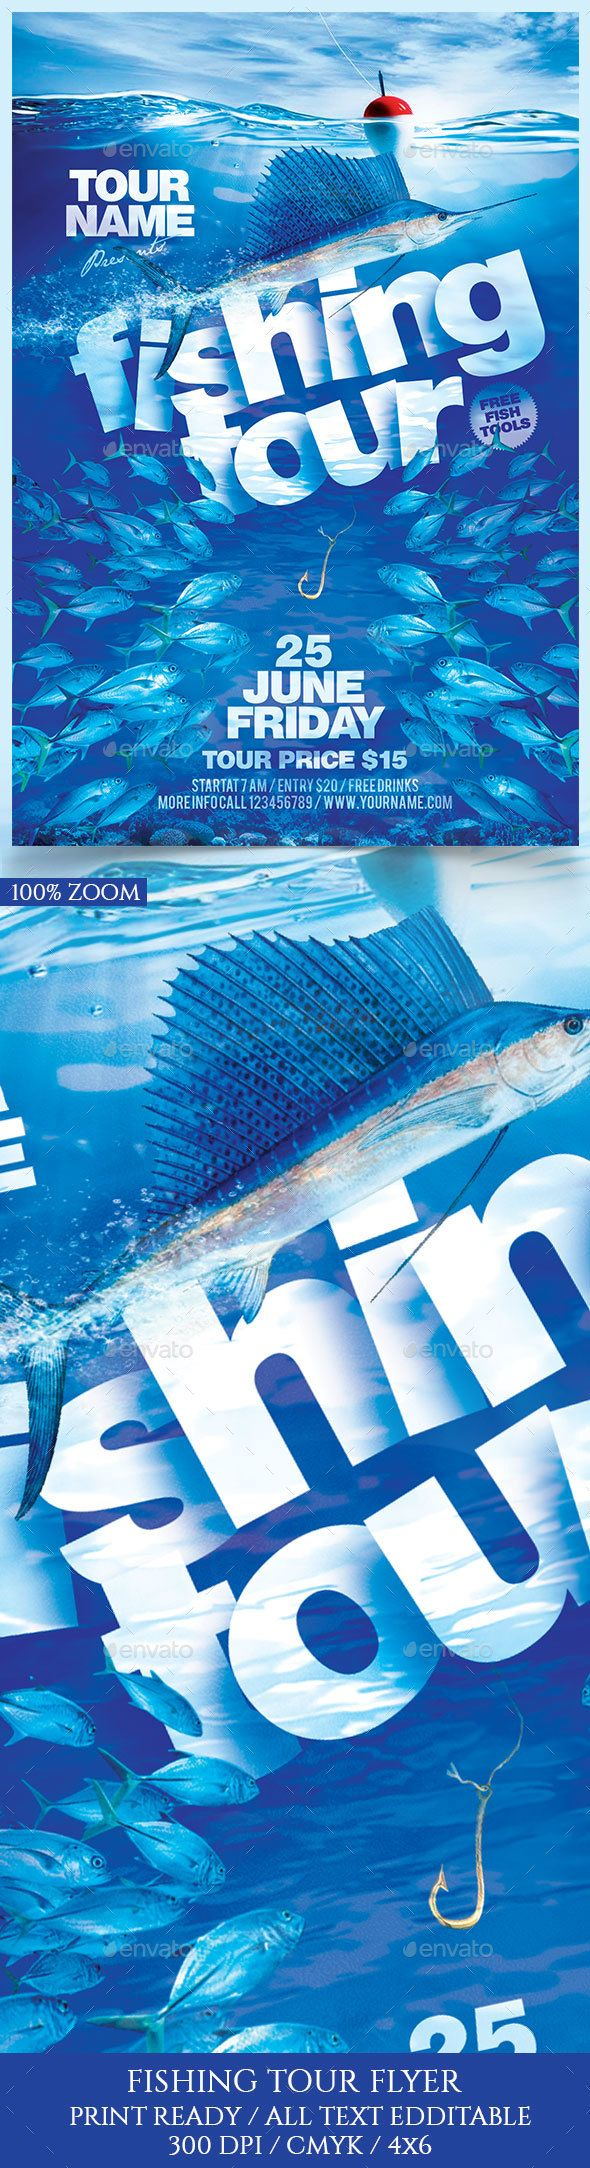 ironing service flyer template - fishing tour flyer template flyers and holidays and events